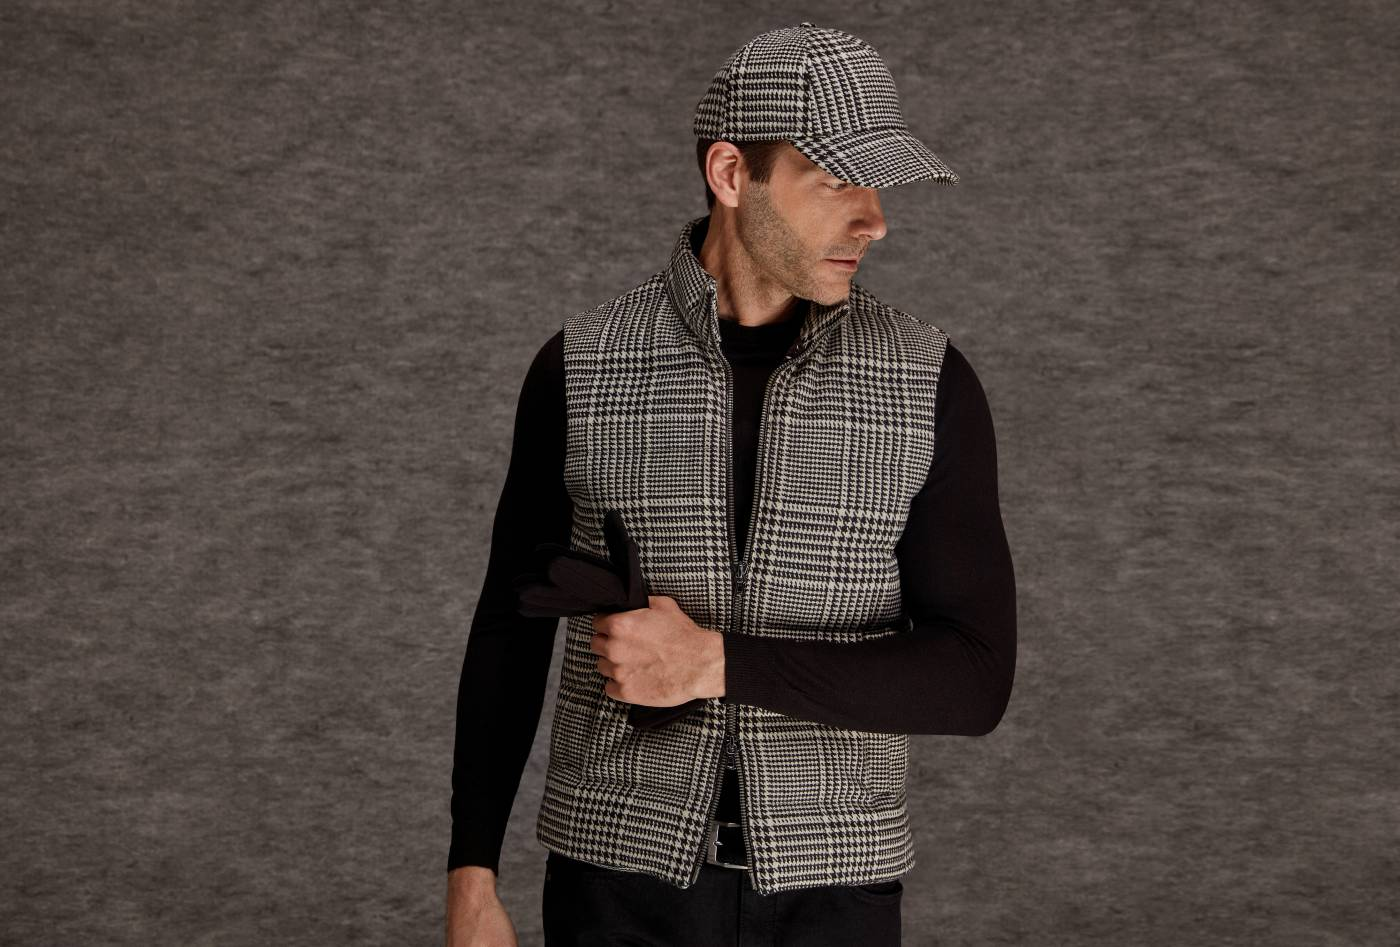 FAMOUS_FASHION_BOUTIQUE_FOR_MEN_FOR_SALE_IN_TOP_MALL_IN_ABU_DHABI_736